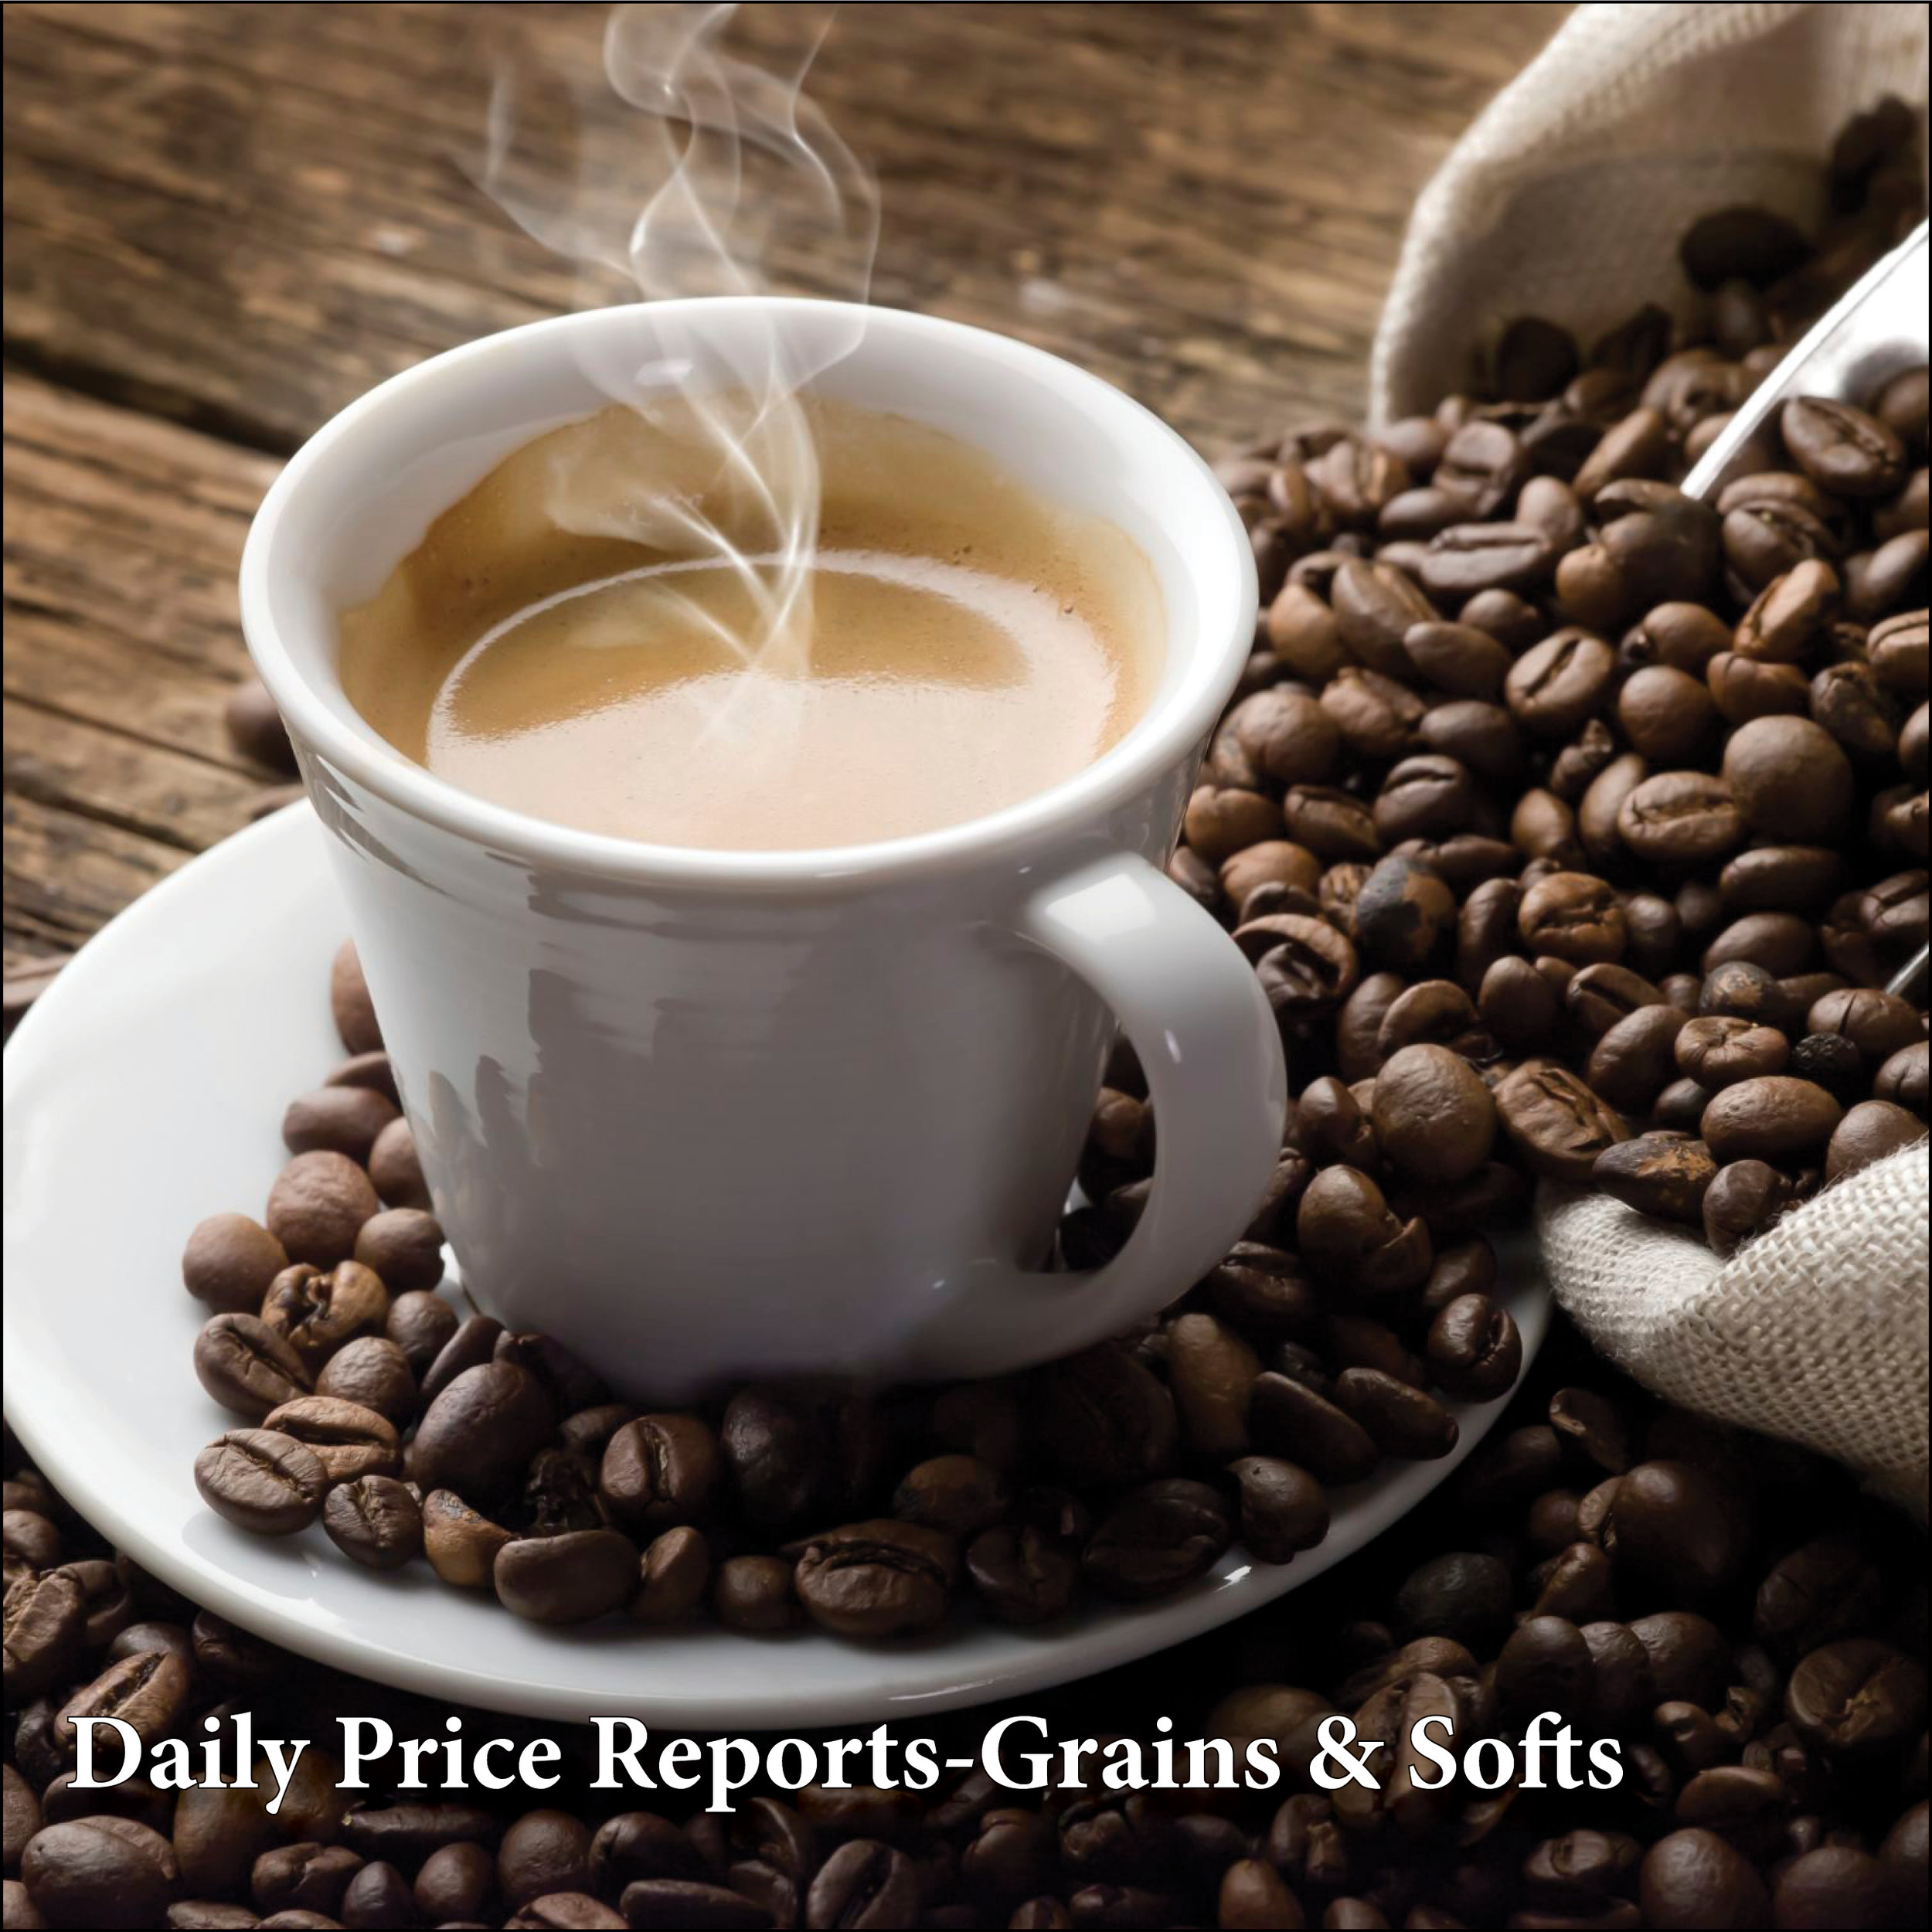 Daily Price Reports – Grains & Softs    CME FUTURES - GRAINS & OIL SEEDS    ICE FUTURES - COFFEE, SUGAR, COCOA, CANOLA, COTTON